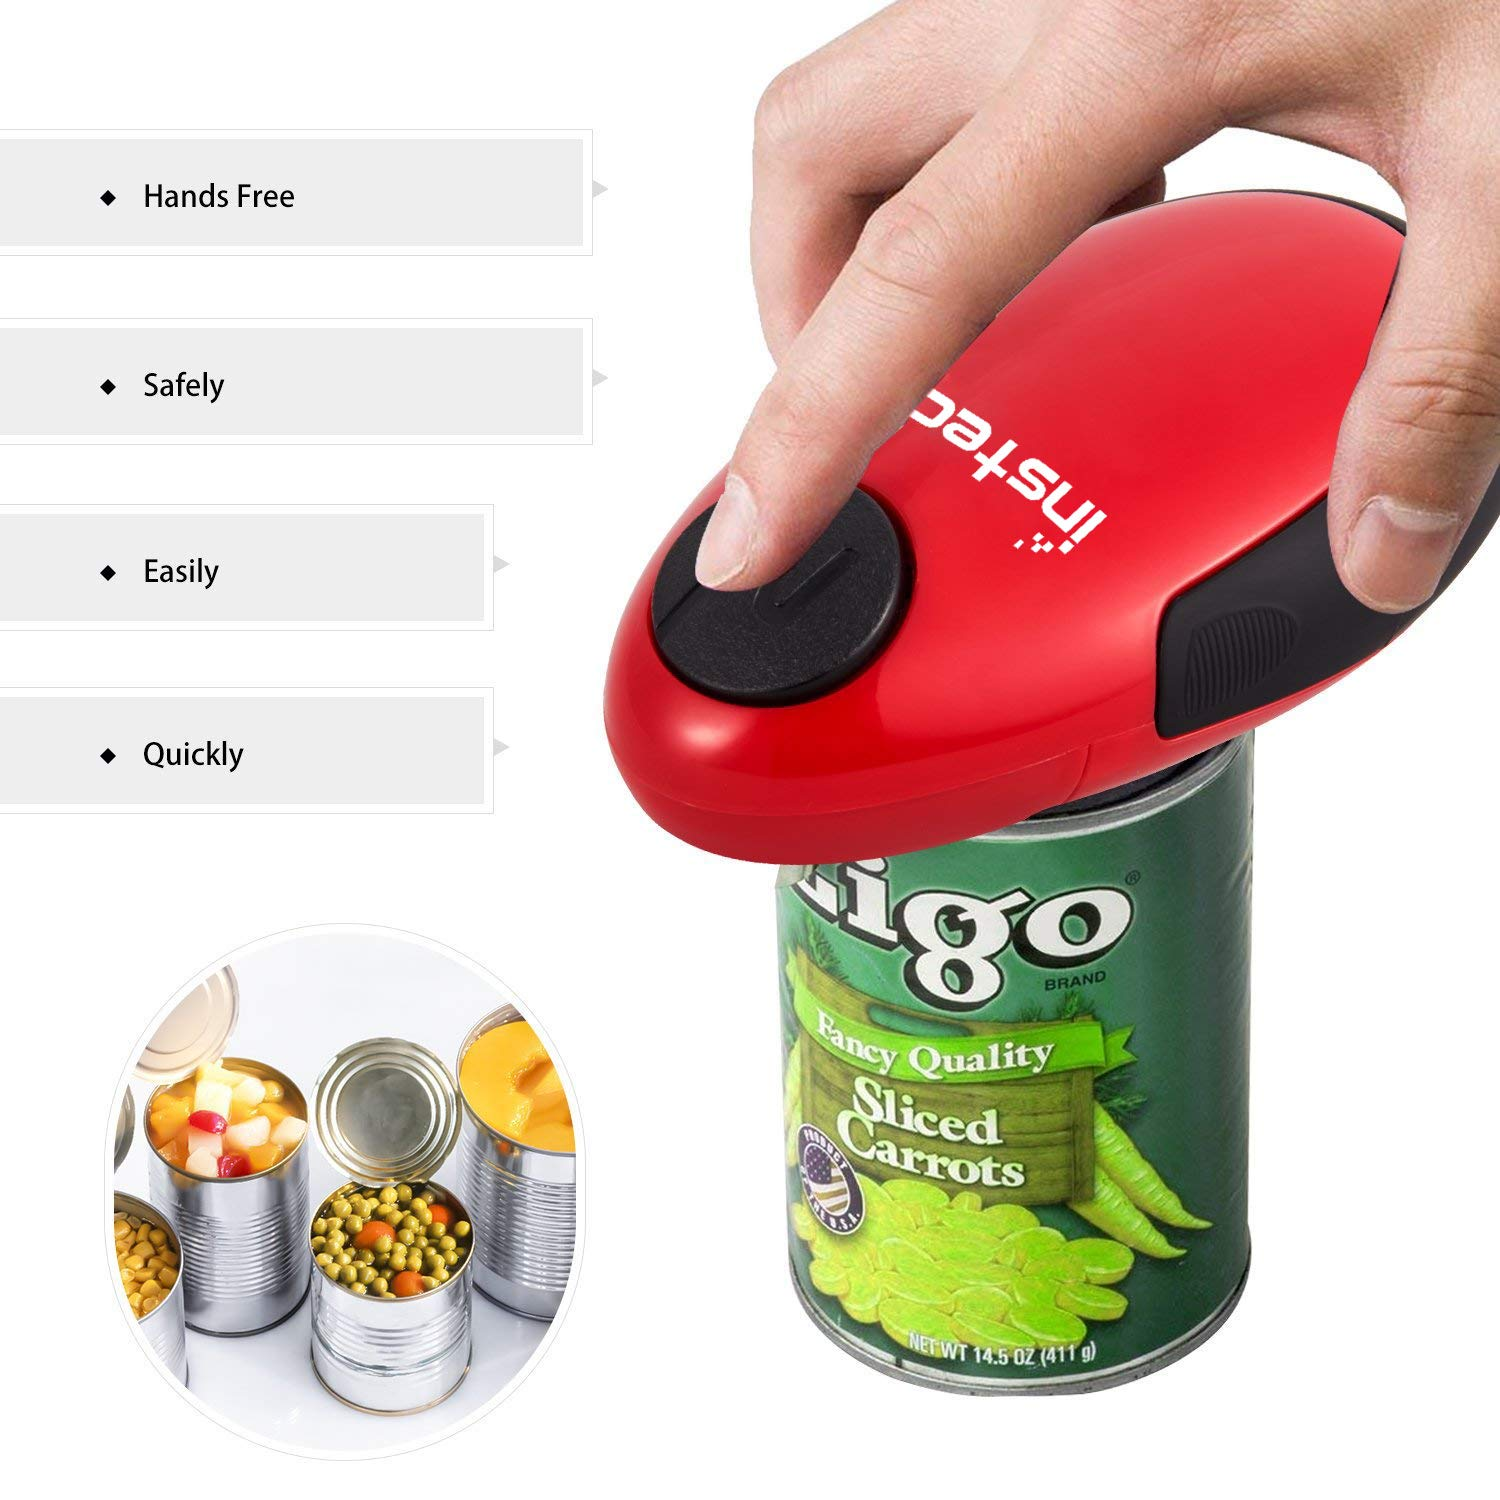 Electric Can Opener, Cakie Restaurant Can Opener Smooth Soft Edge One-touch Battery Automatic Electric Hands-free Can Opener For Kitchen Arthritis Elderly Travel and Chef's Best Choice's (Red) by instecho (Image #7)